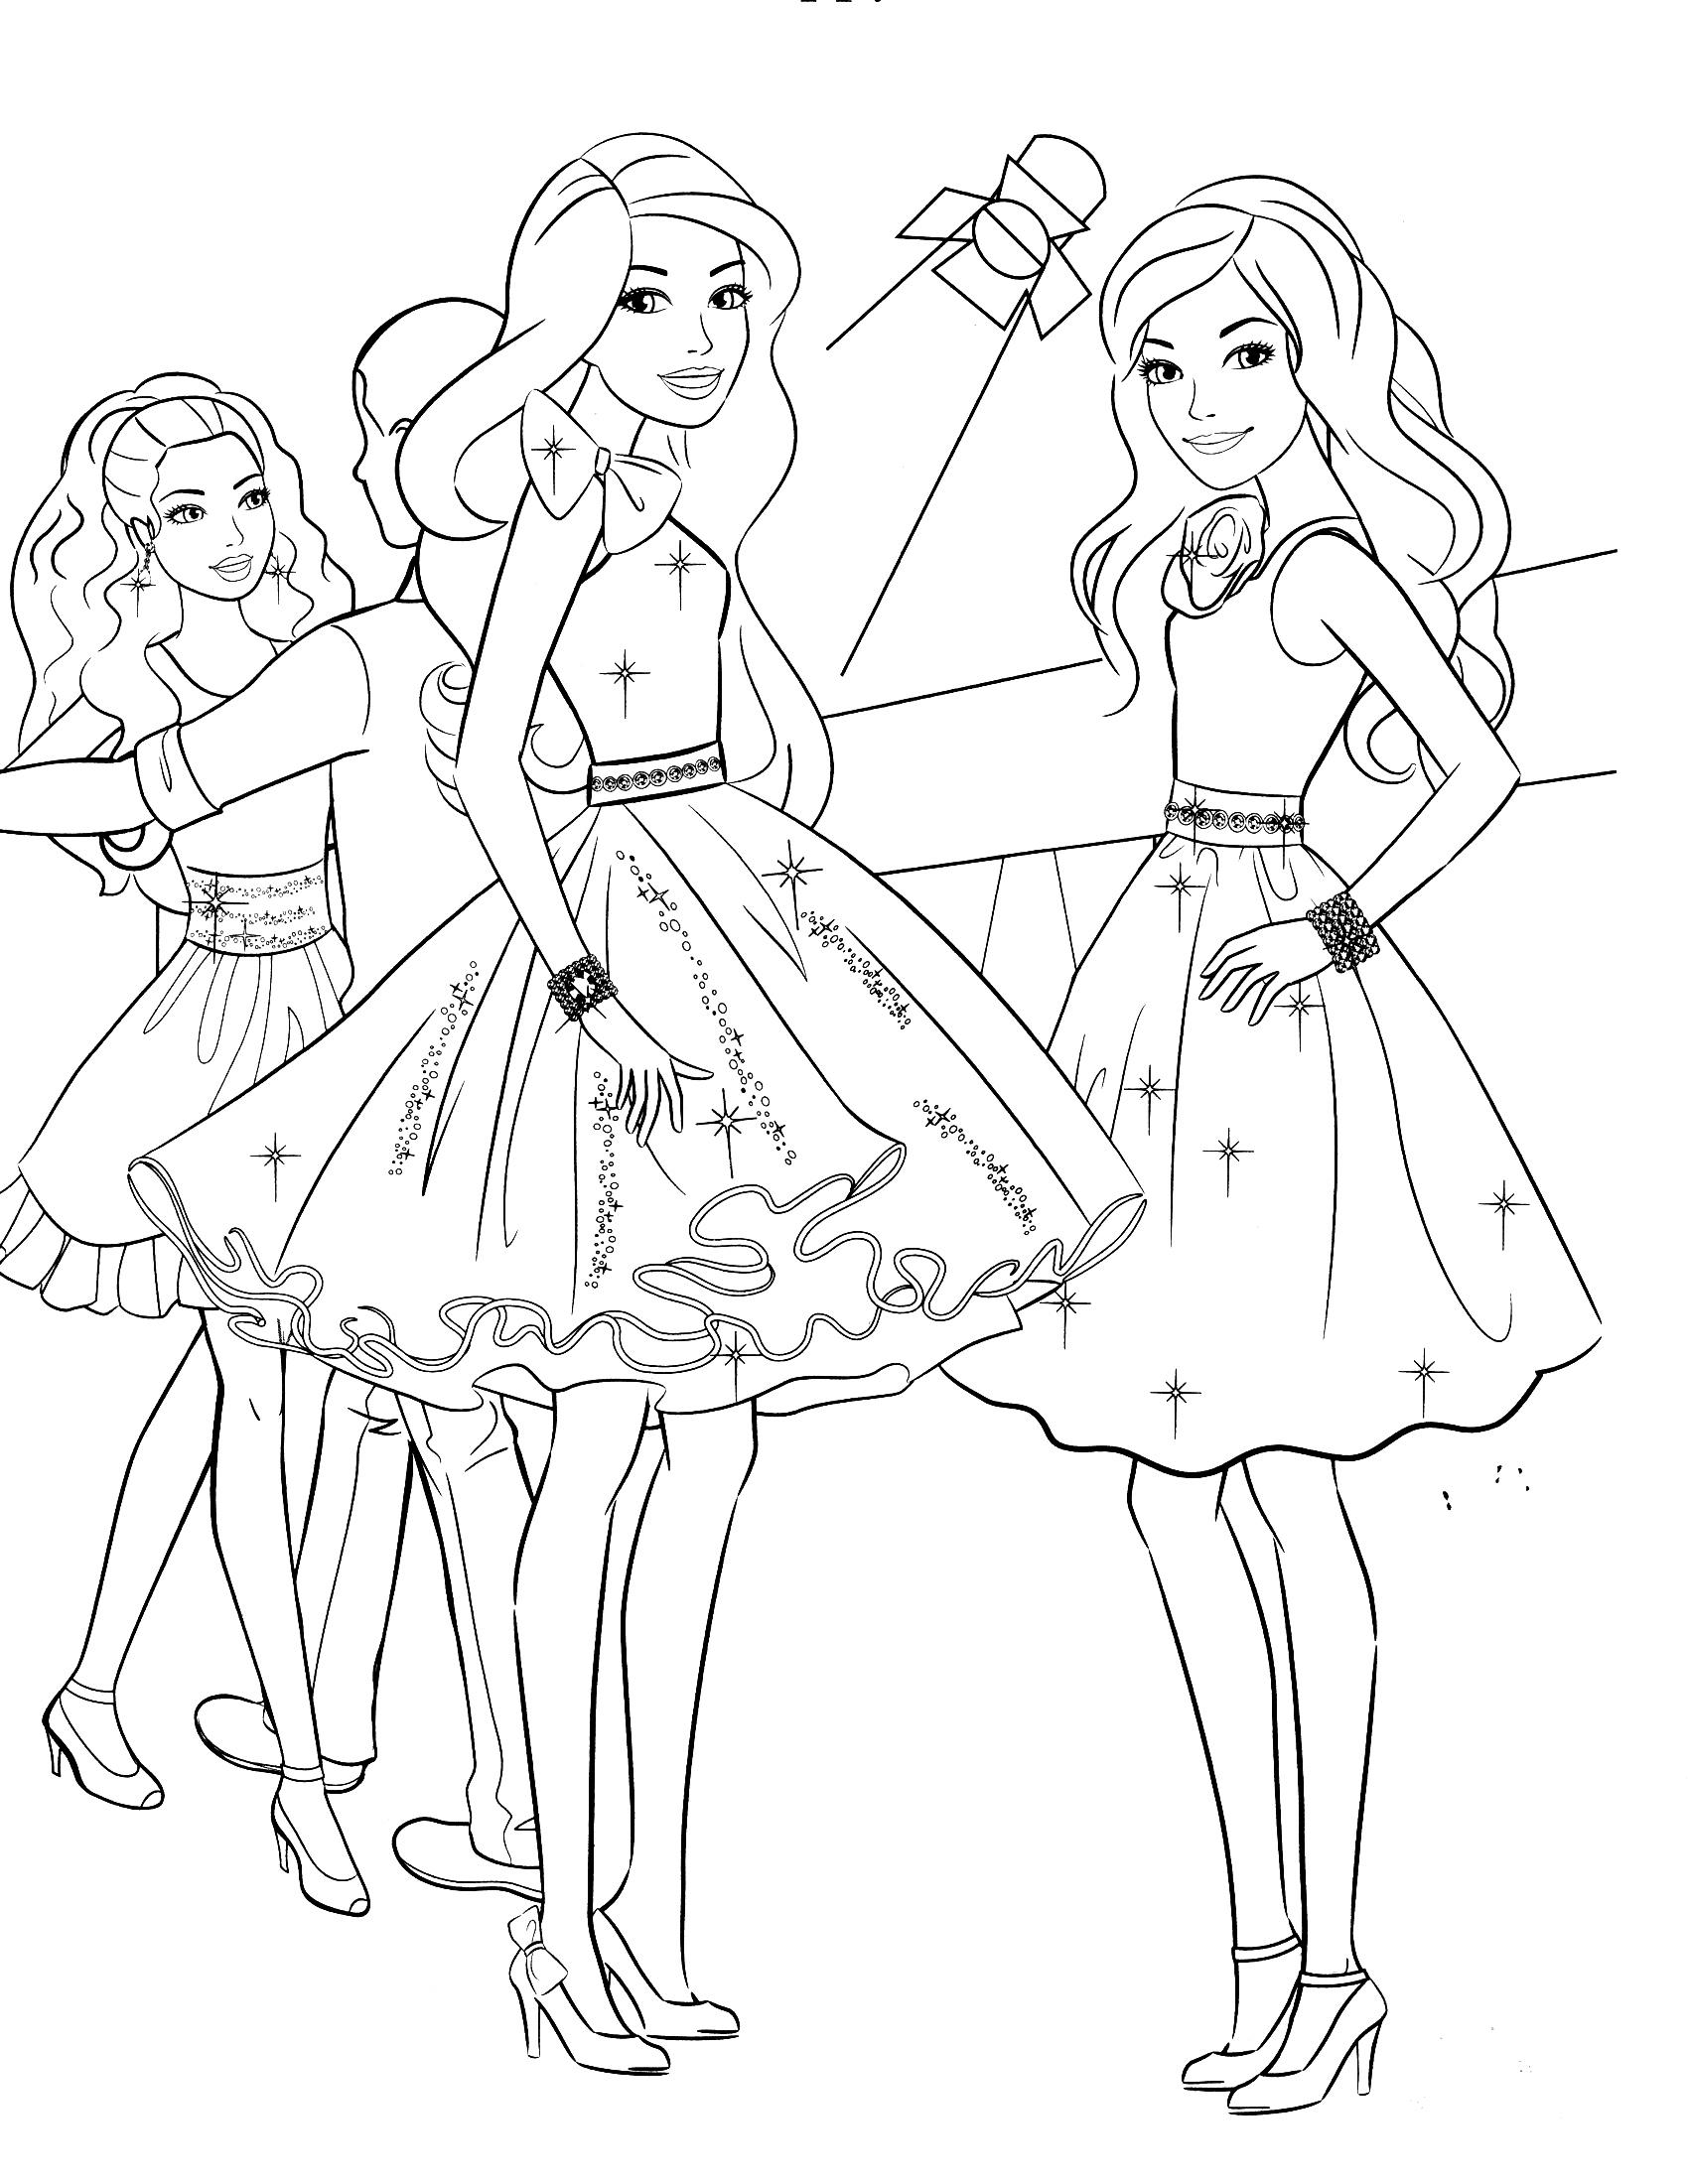 Barbie with friends at the dance